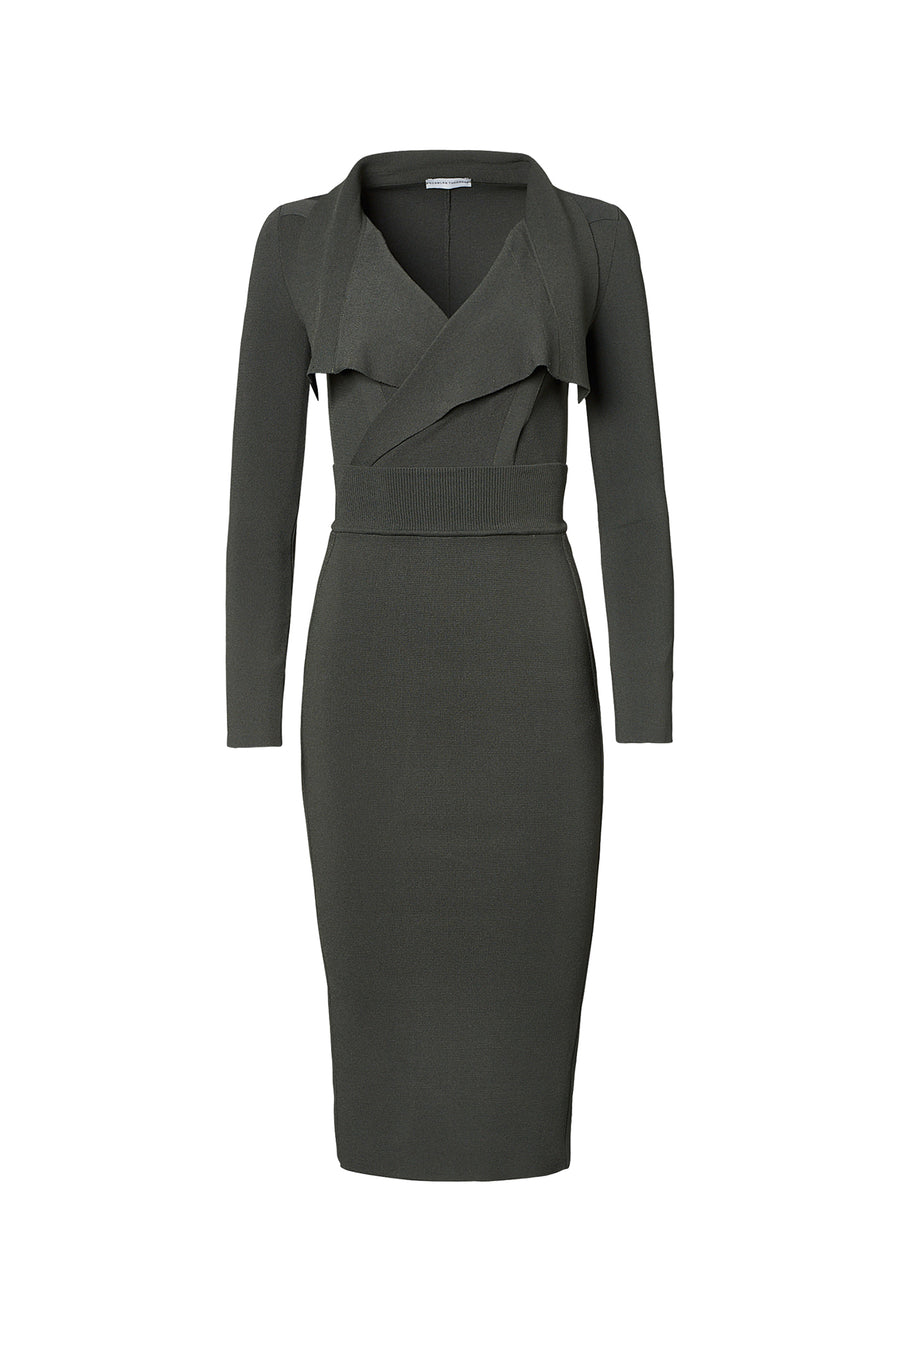 Crepe Knit Drape Front Dress, pointed collar, fitted bodice, shoulder pads, long sleeves, falls below the knee, color safari